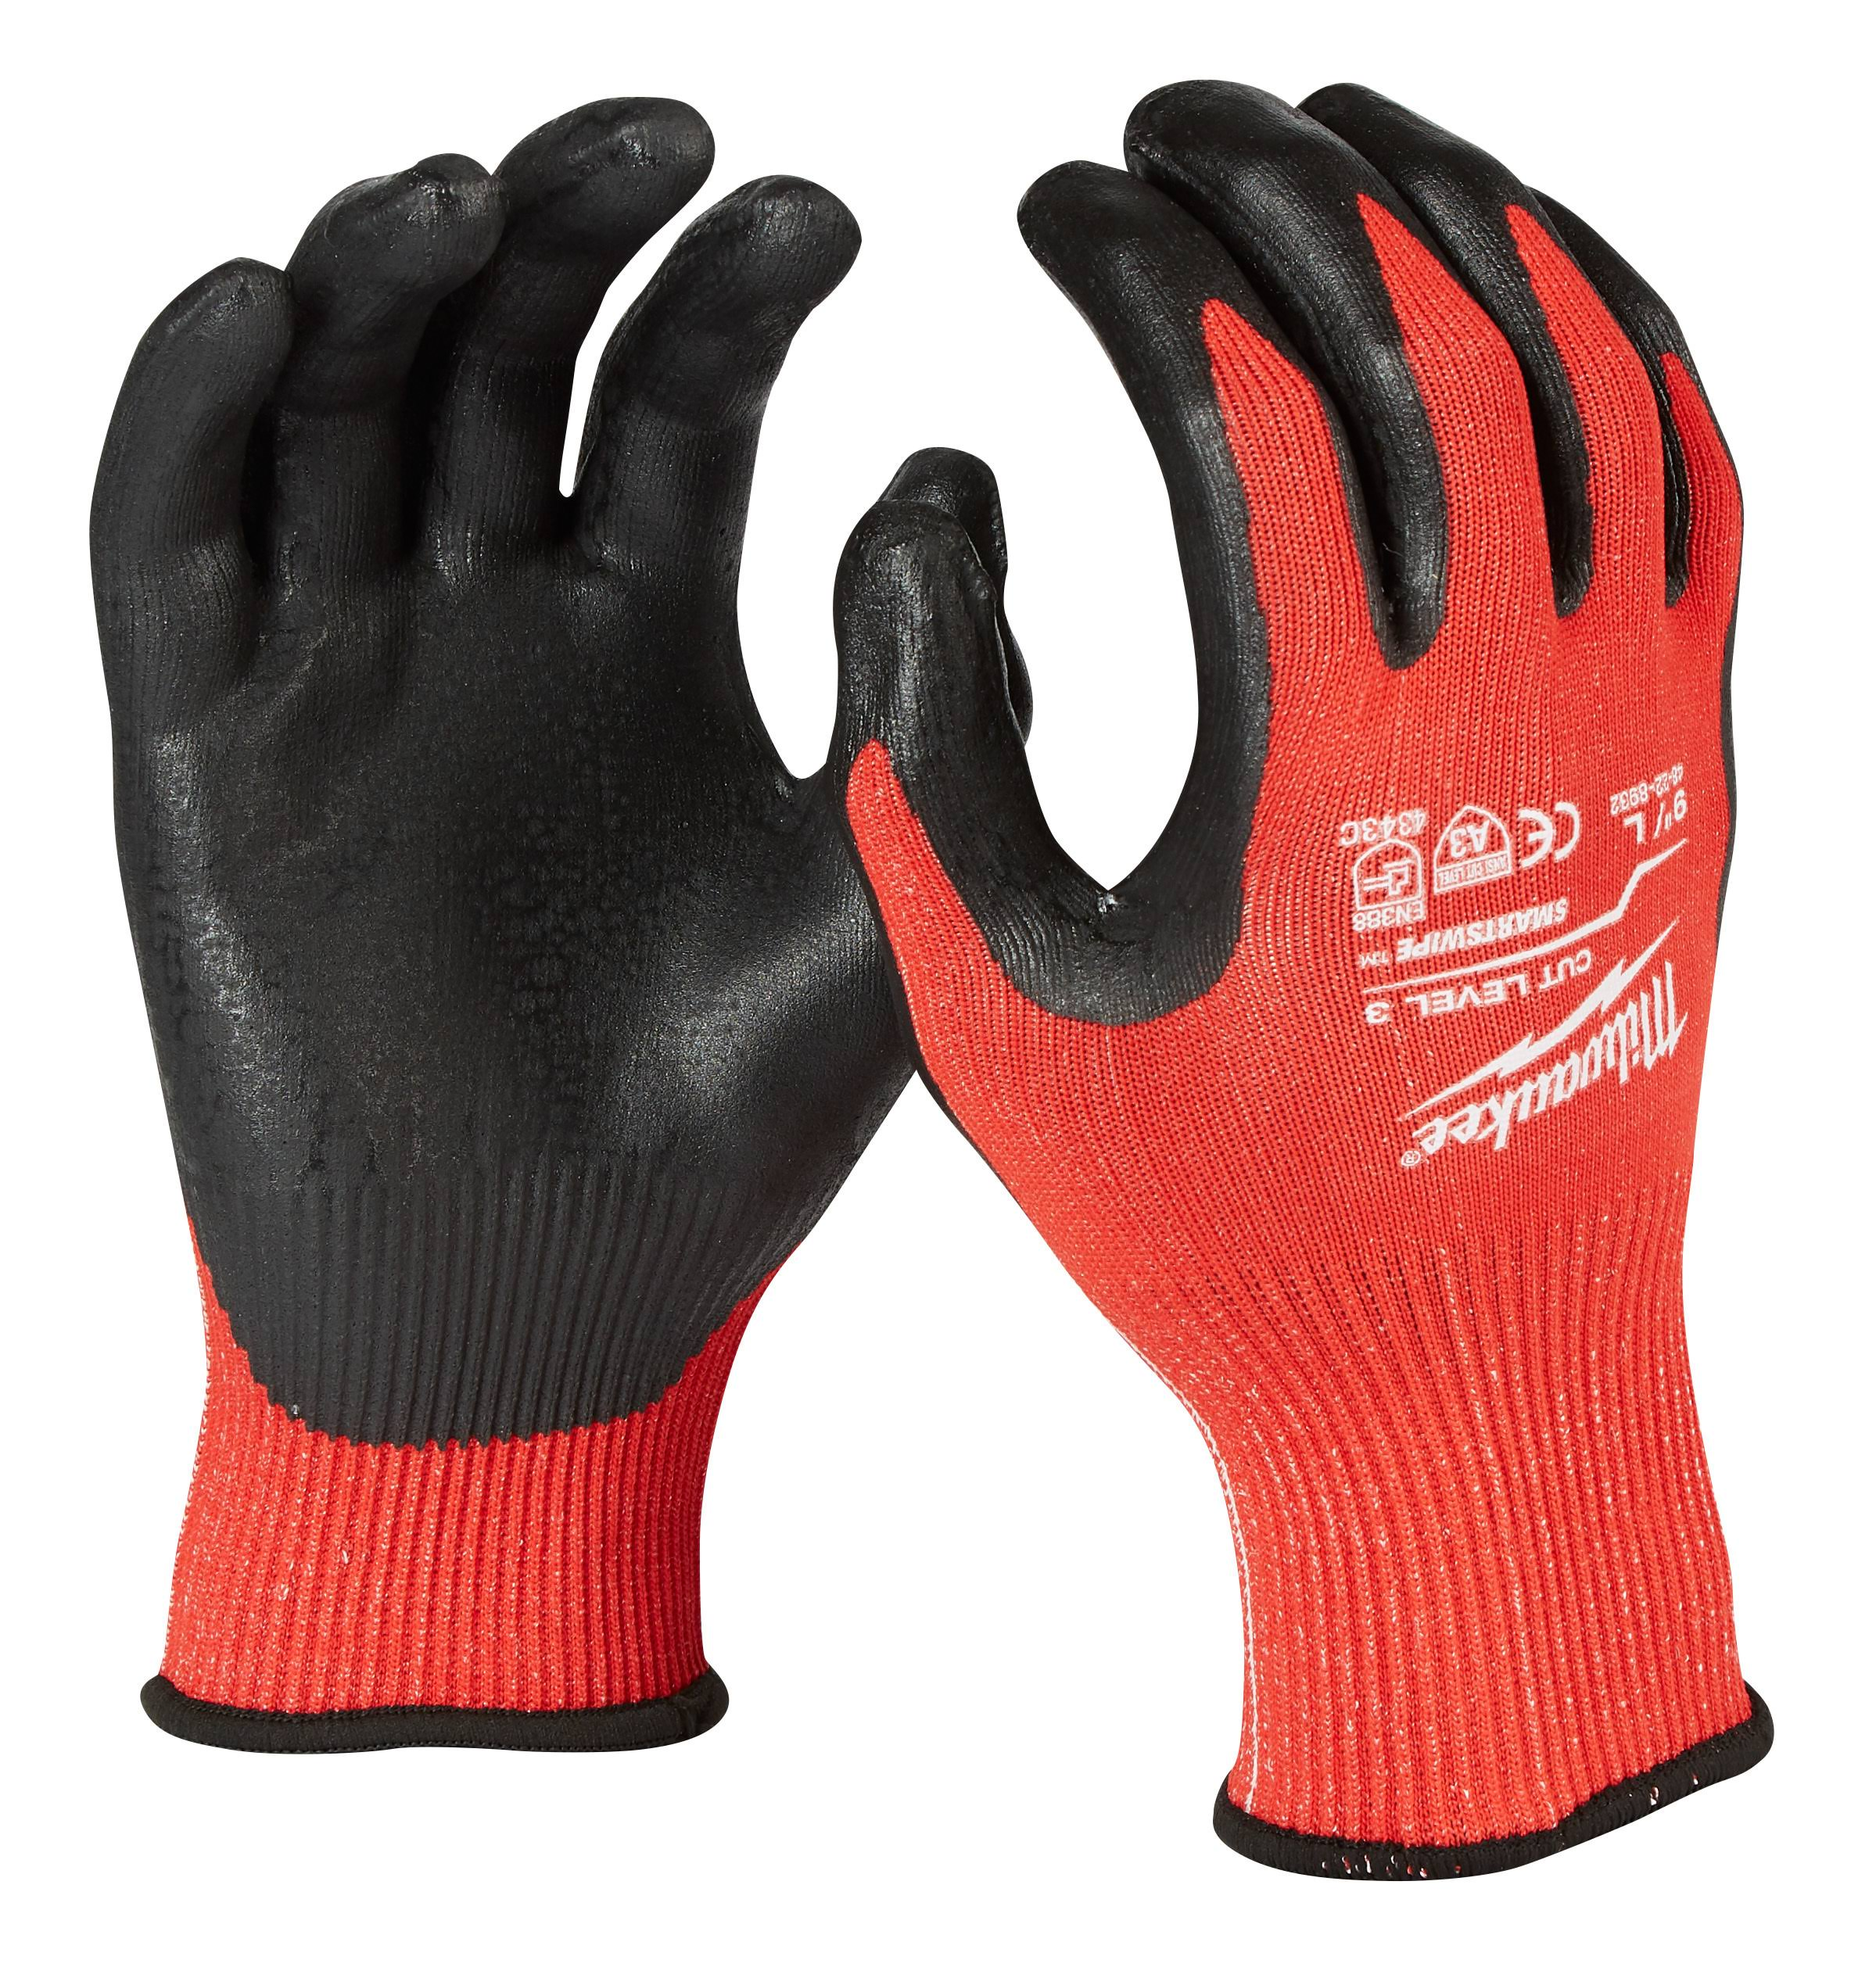 Milwaukee Men's Cut 3 Nitrile Utility Gloves - Red and Black, Large